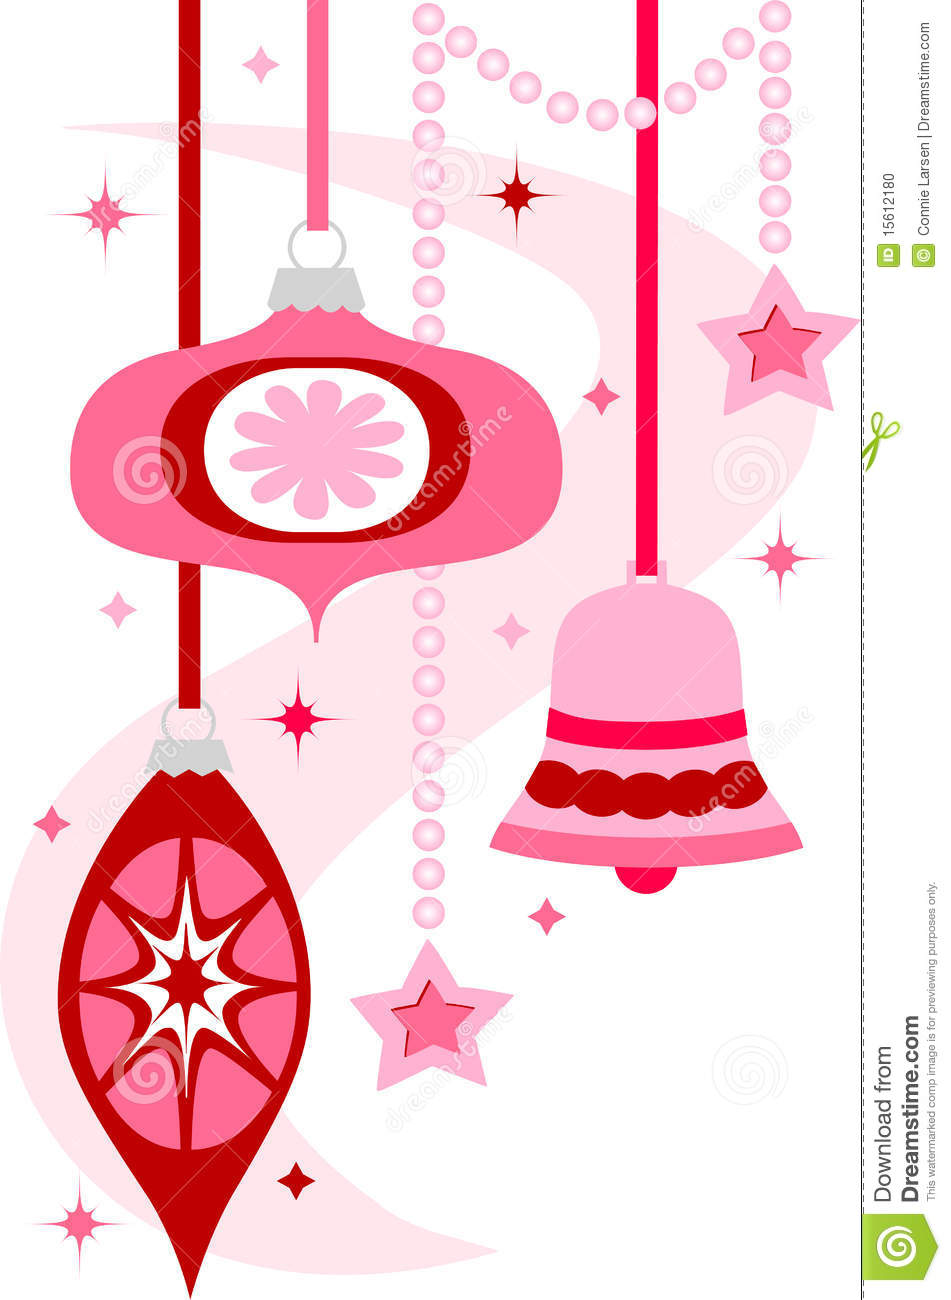 Retro Christmas Ornaments/eps Stock Vector.